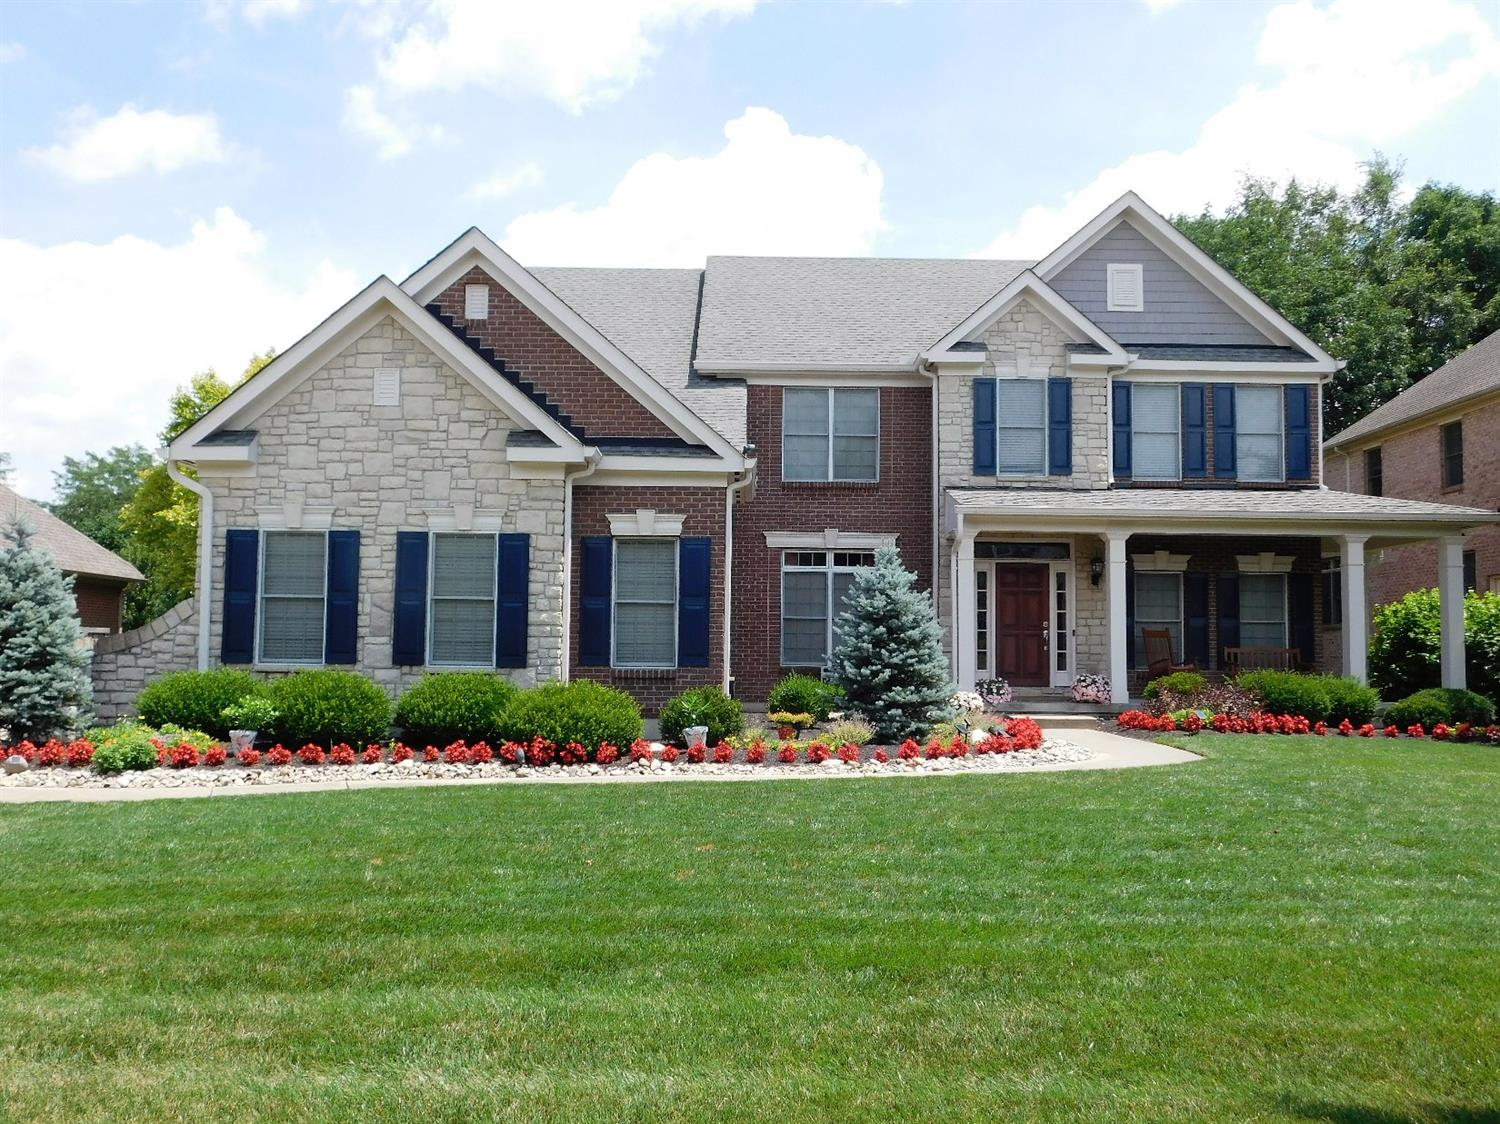 Property for sale at 3960 The Ridings, Deerfield Twp.,  Ohio 45040